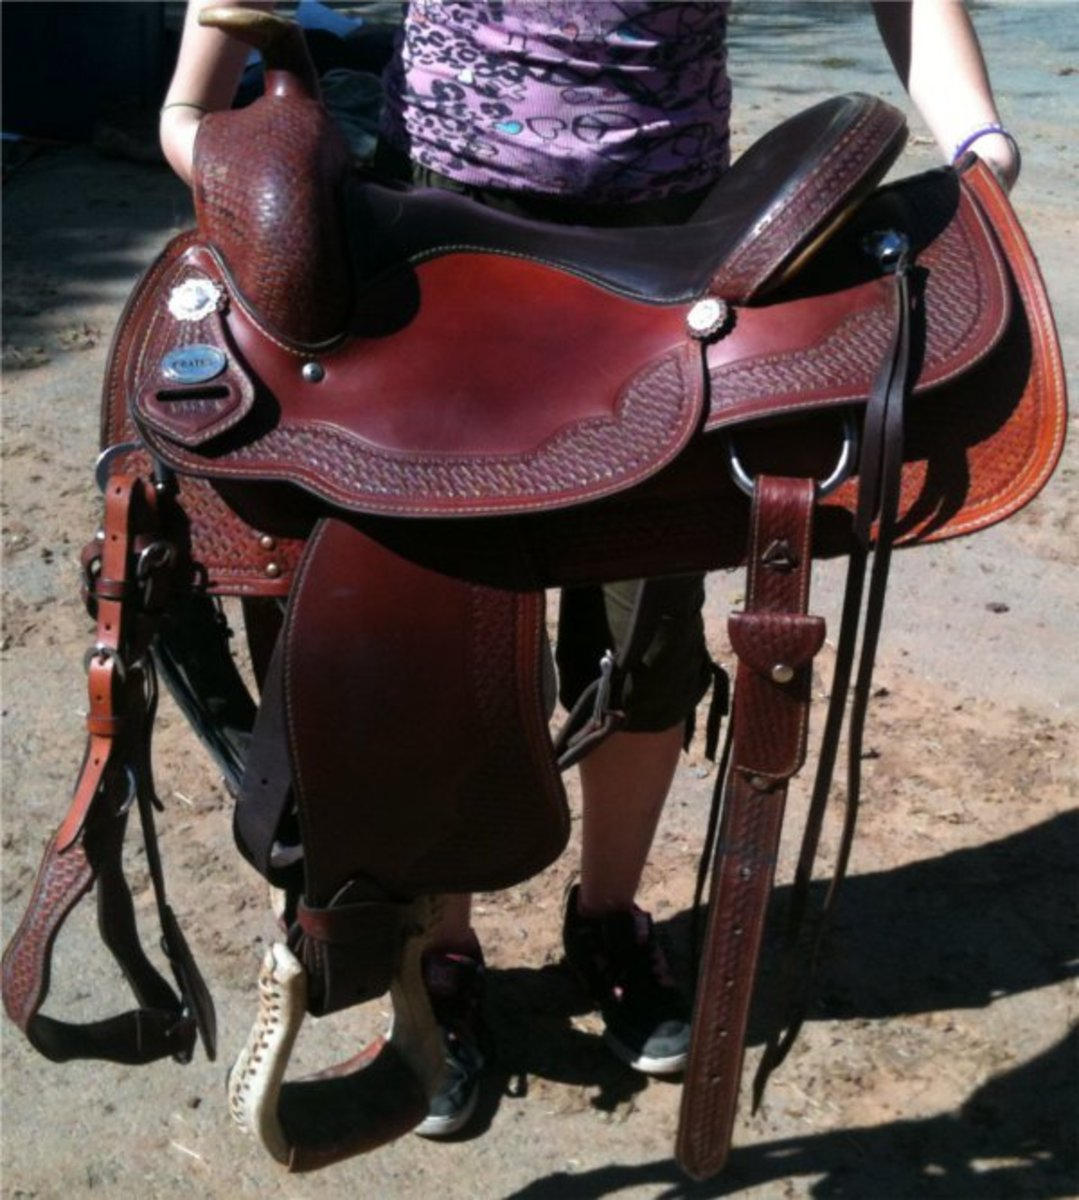 With all of these straps and stirrups dangling, I'm certain to trip on one walking this saddle to the horse.